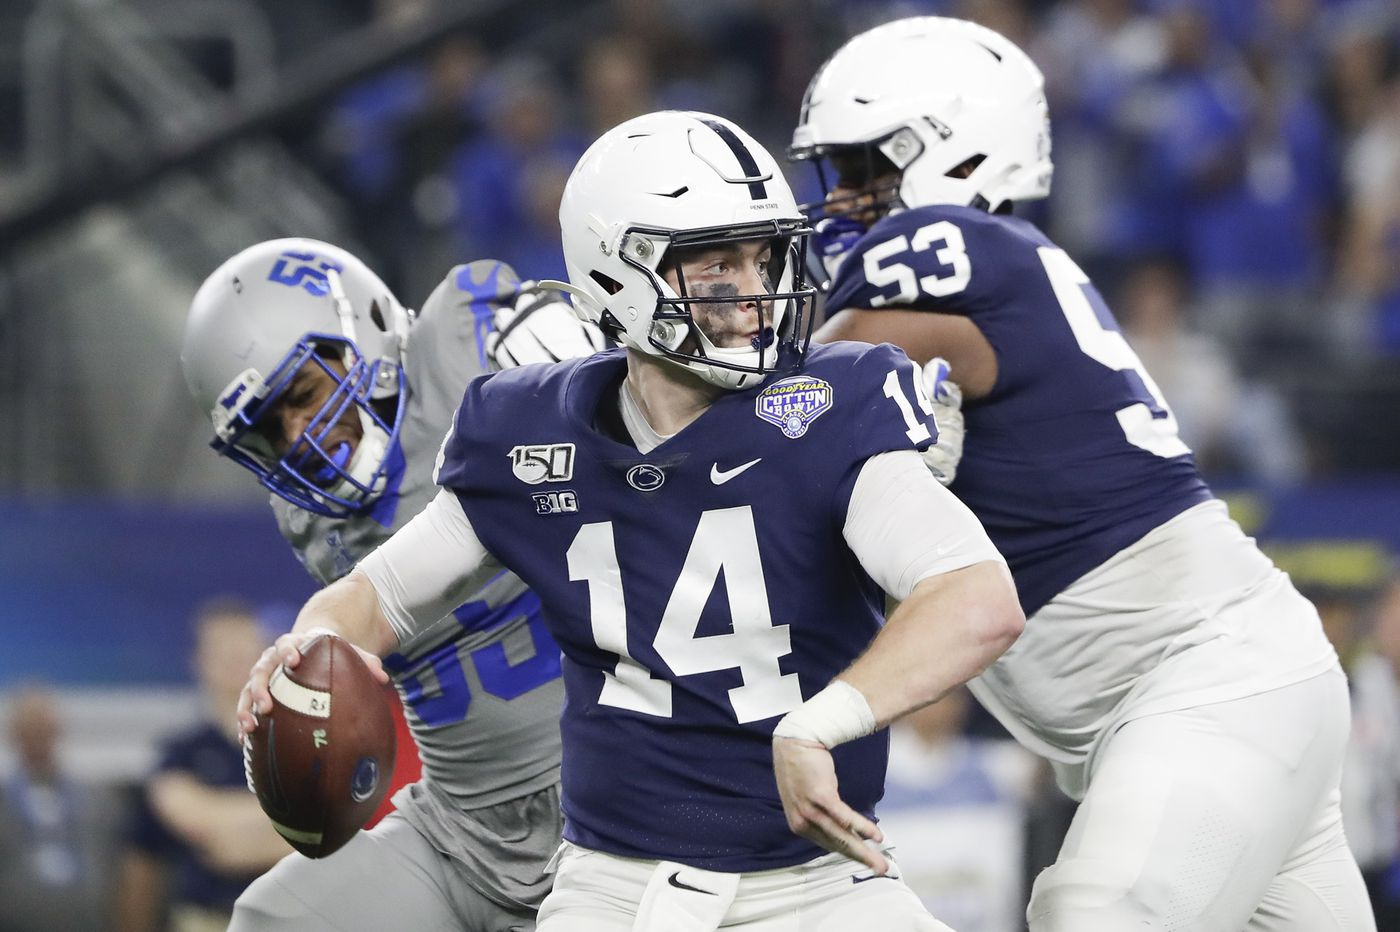 Penn State quarterback Sean Clifford and new offensive coordinator Kirk Ciarrocca working well together